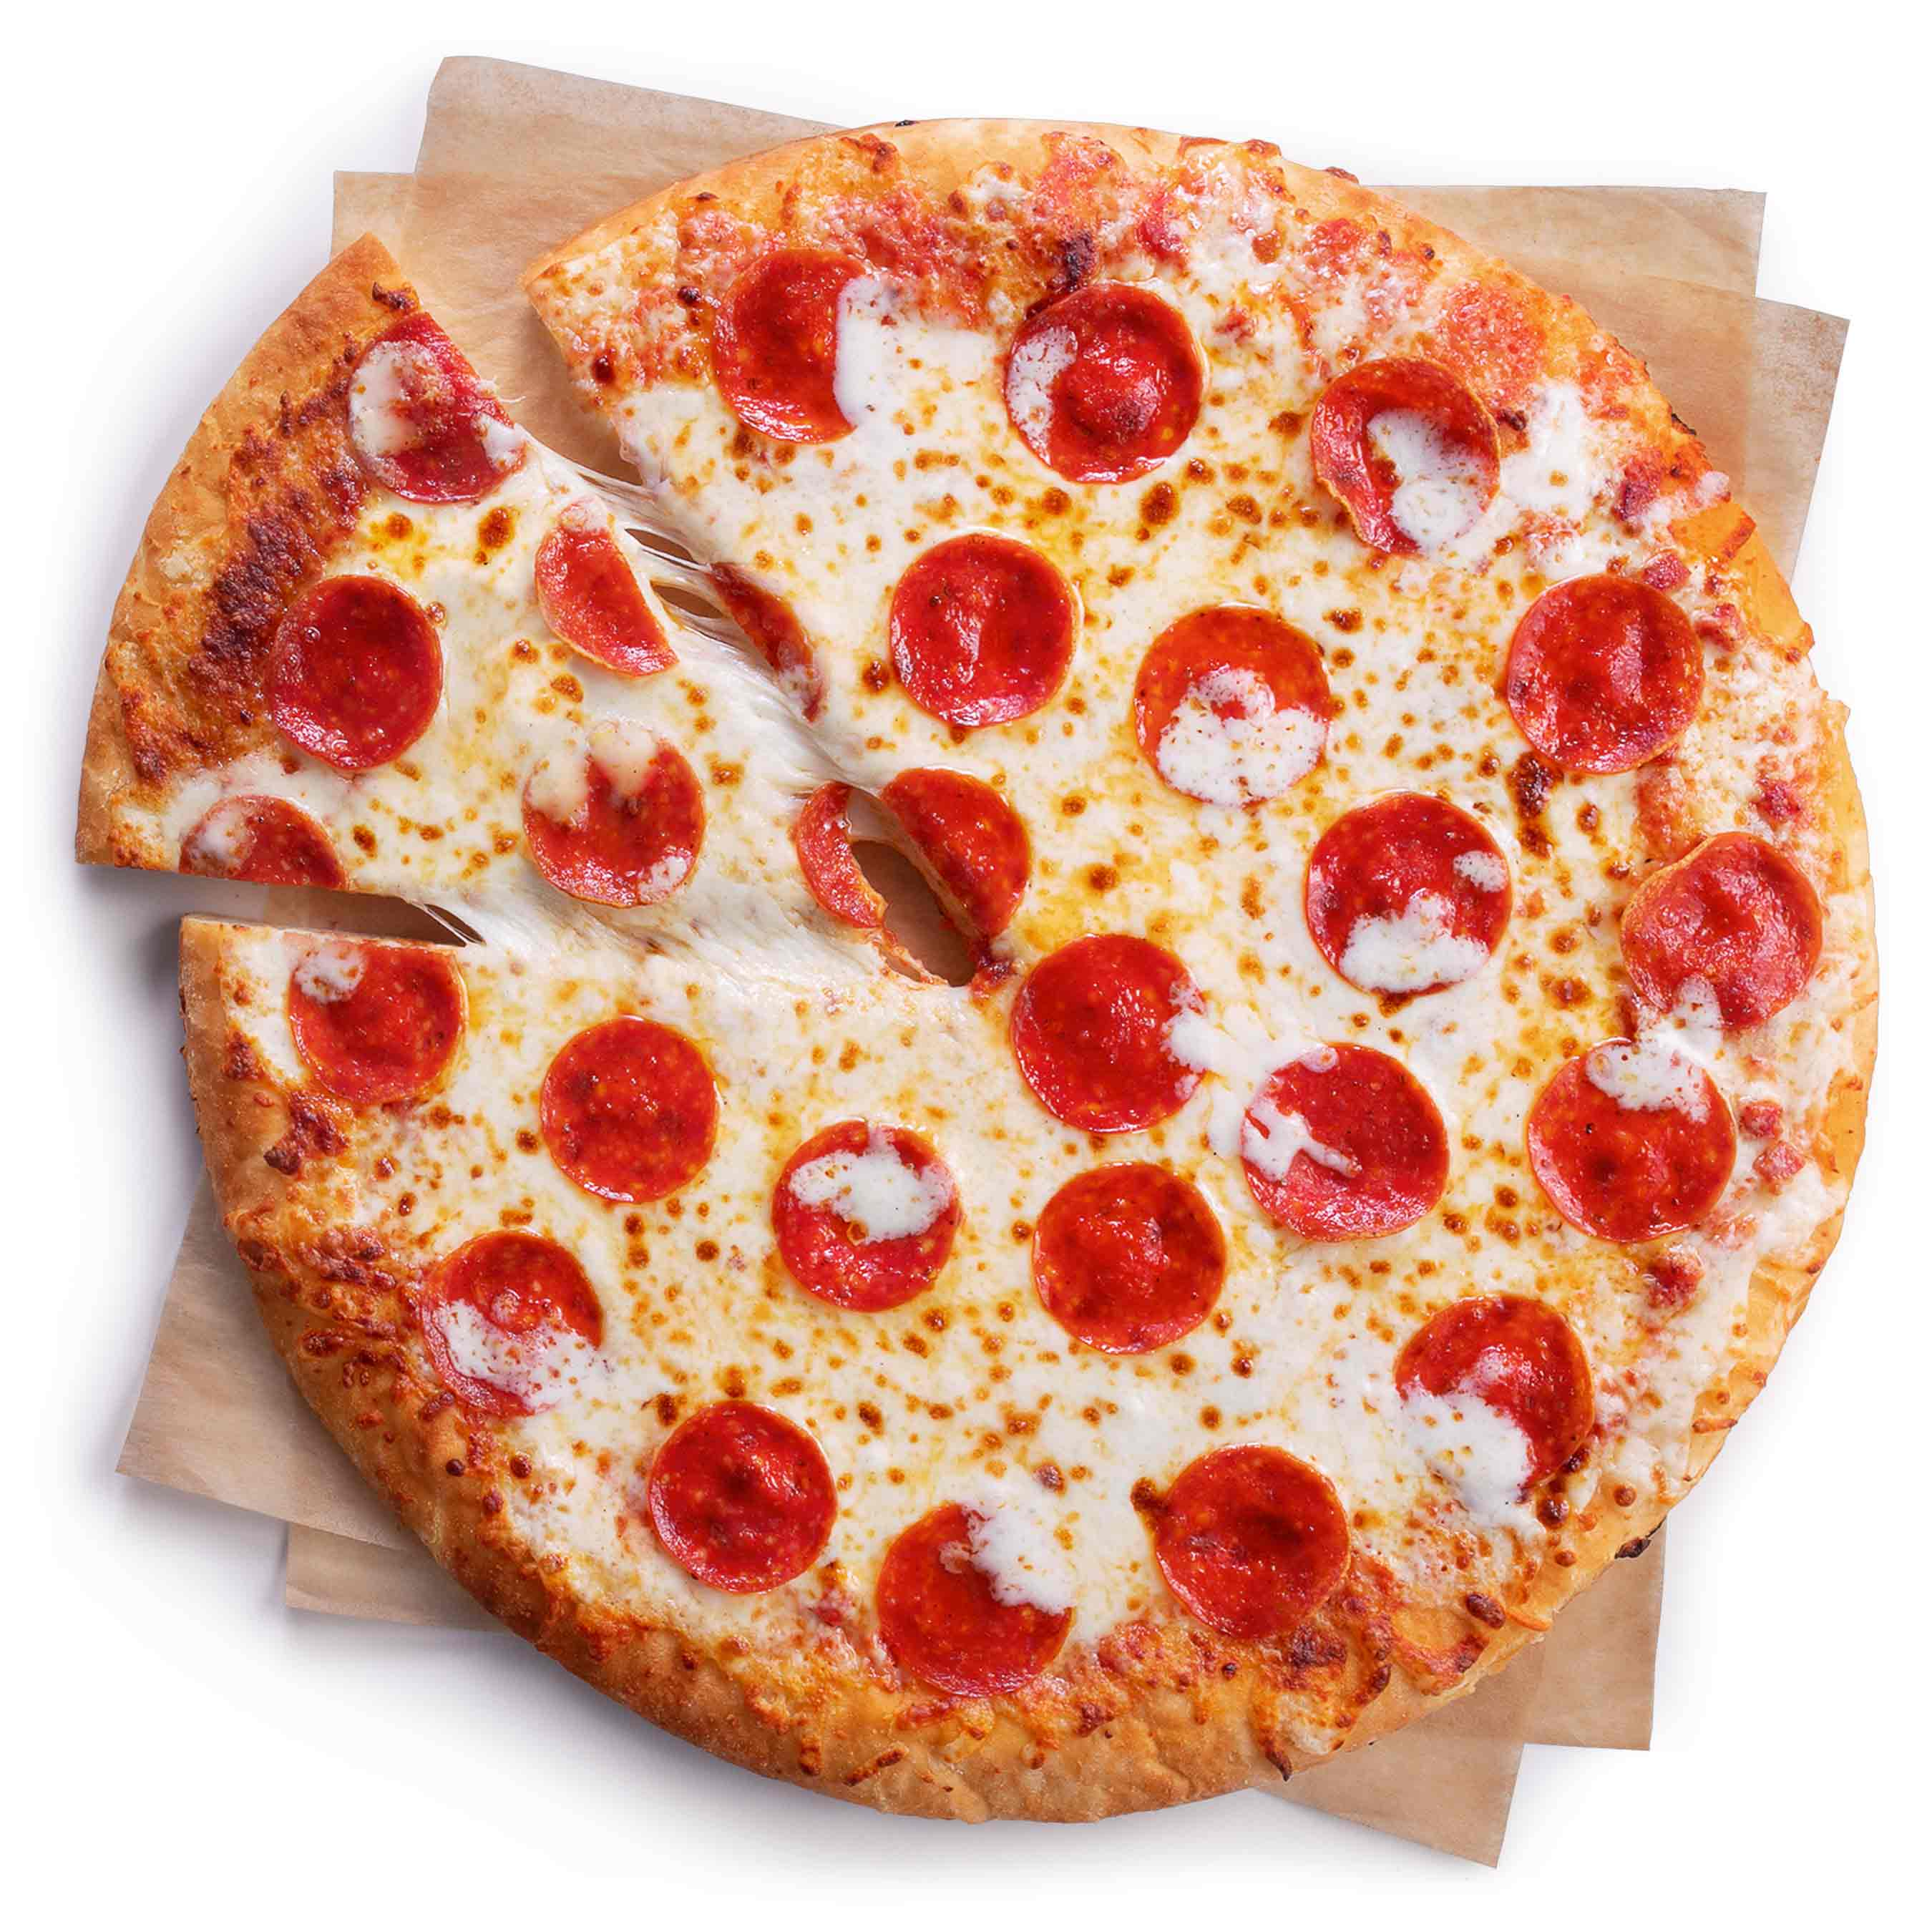 7-Eleven: Whole Large Pizza (Pepperoni, Extreme Meat, Triple Cheese)